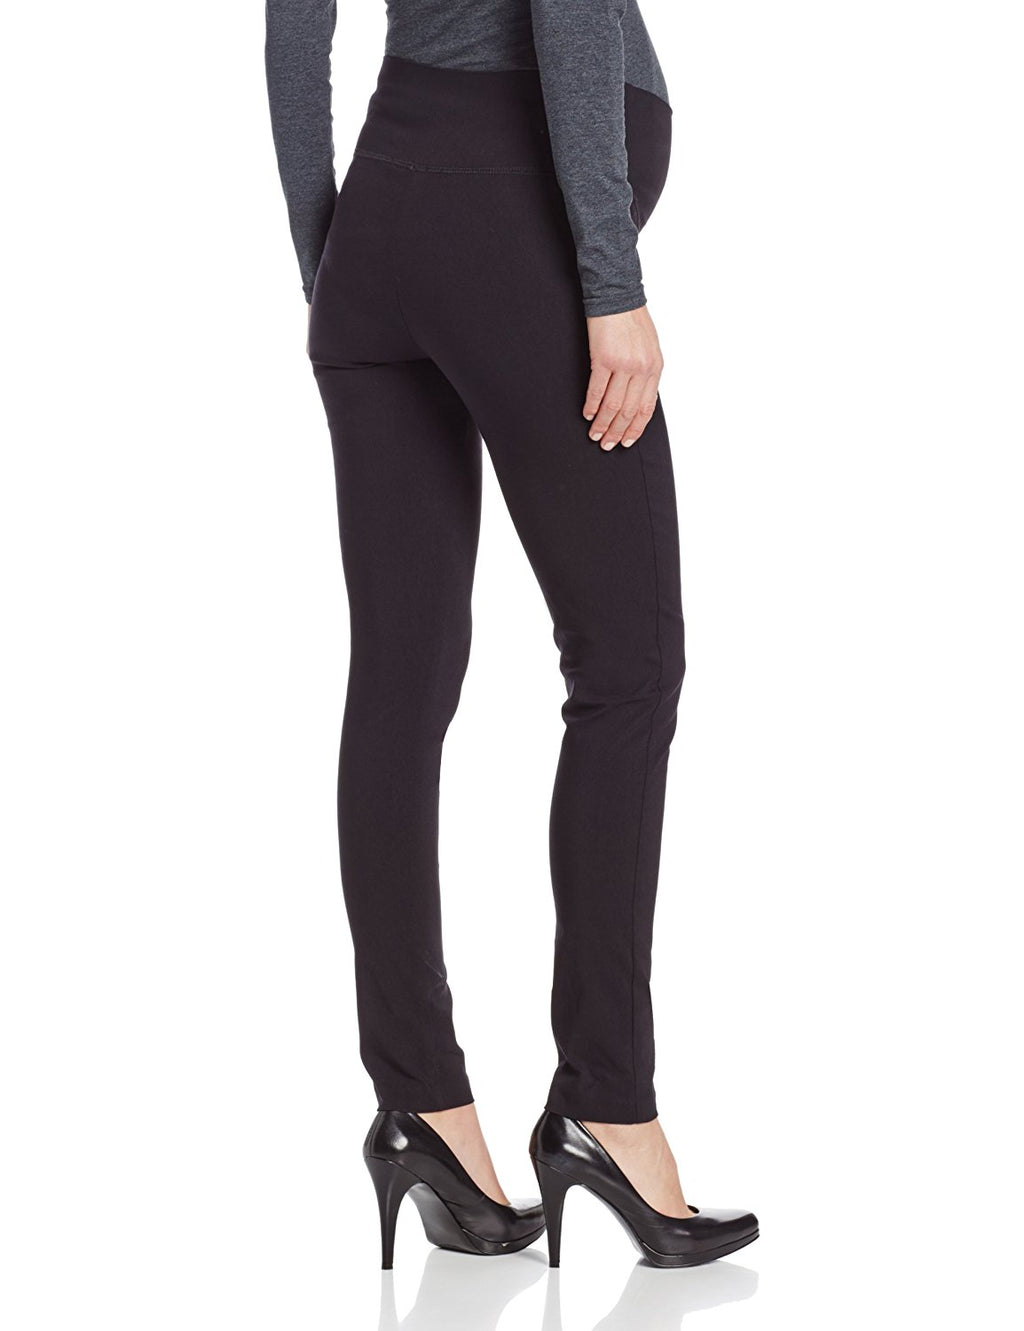 Ripe Suzie Super Straight Maternity Pant in Navy - Seven Women Maternity